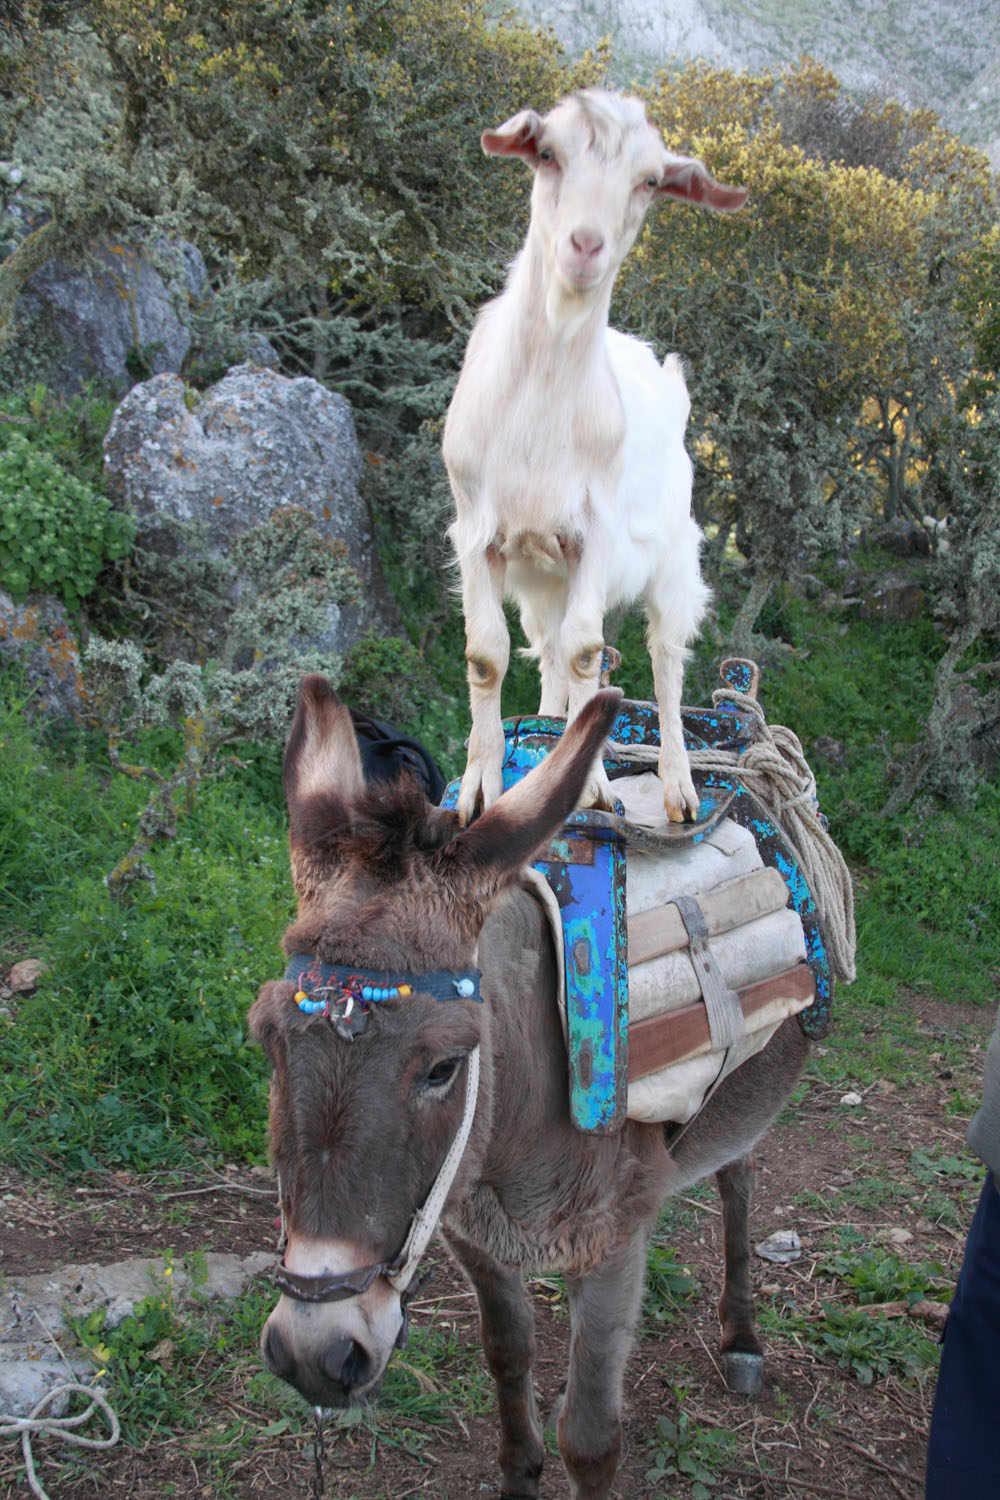 Goat riding on donkey